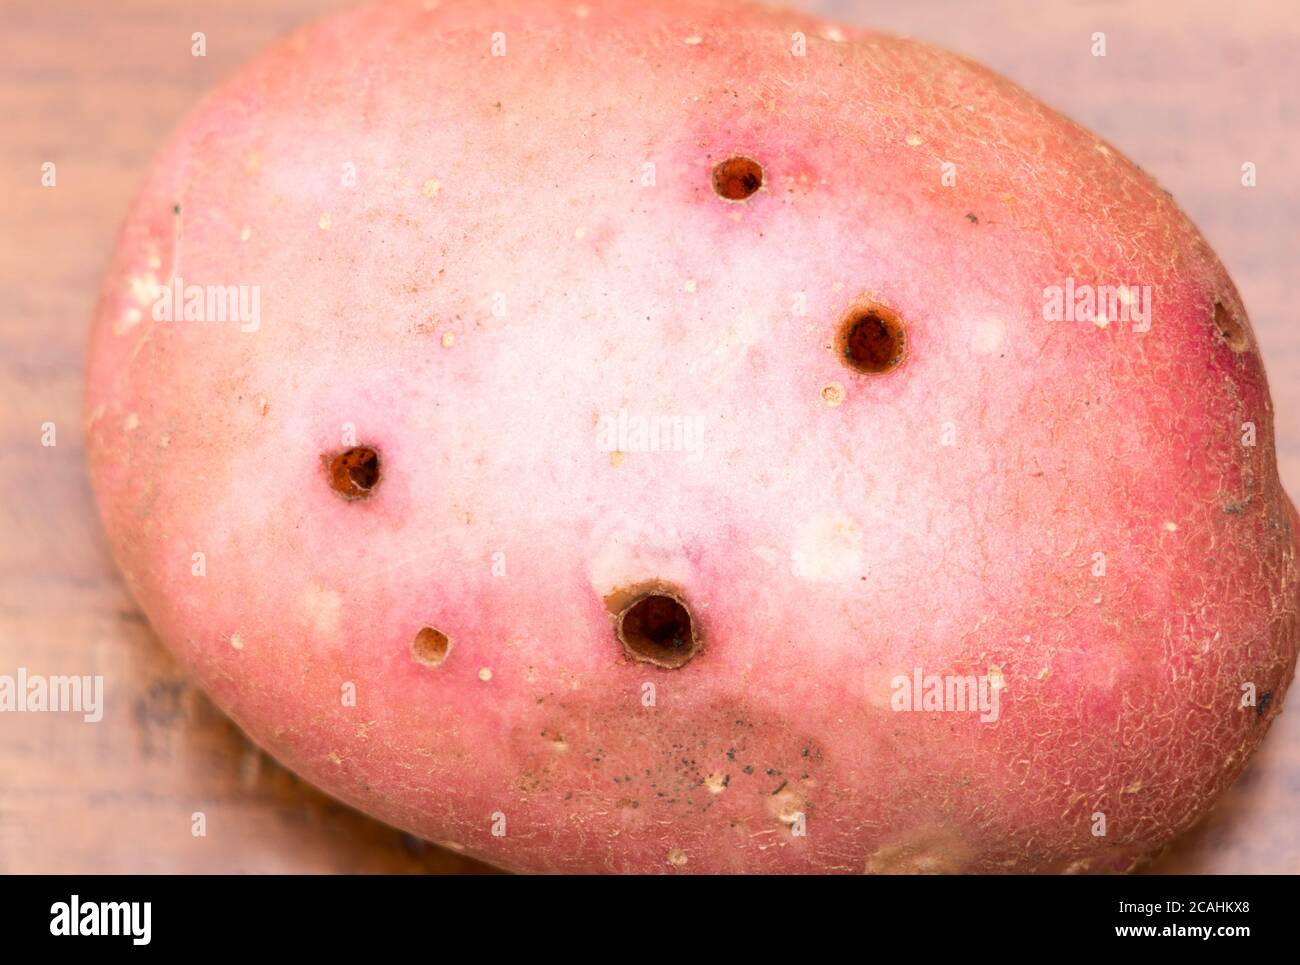 Potato problems, tuber showing slug or wireworm damage in variety Red Rooster, England, UK Stock Photo